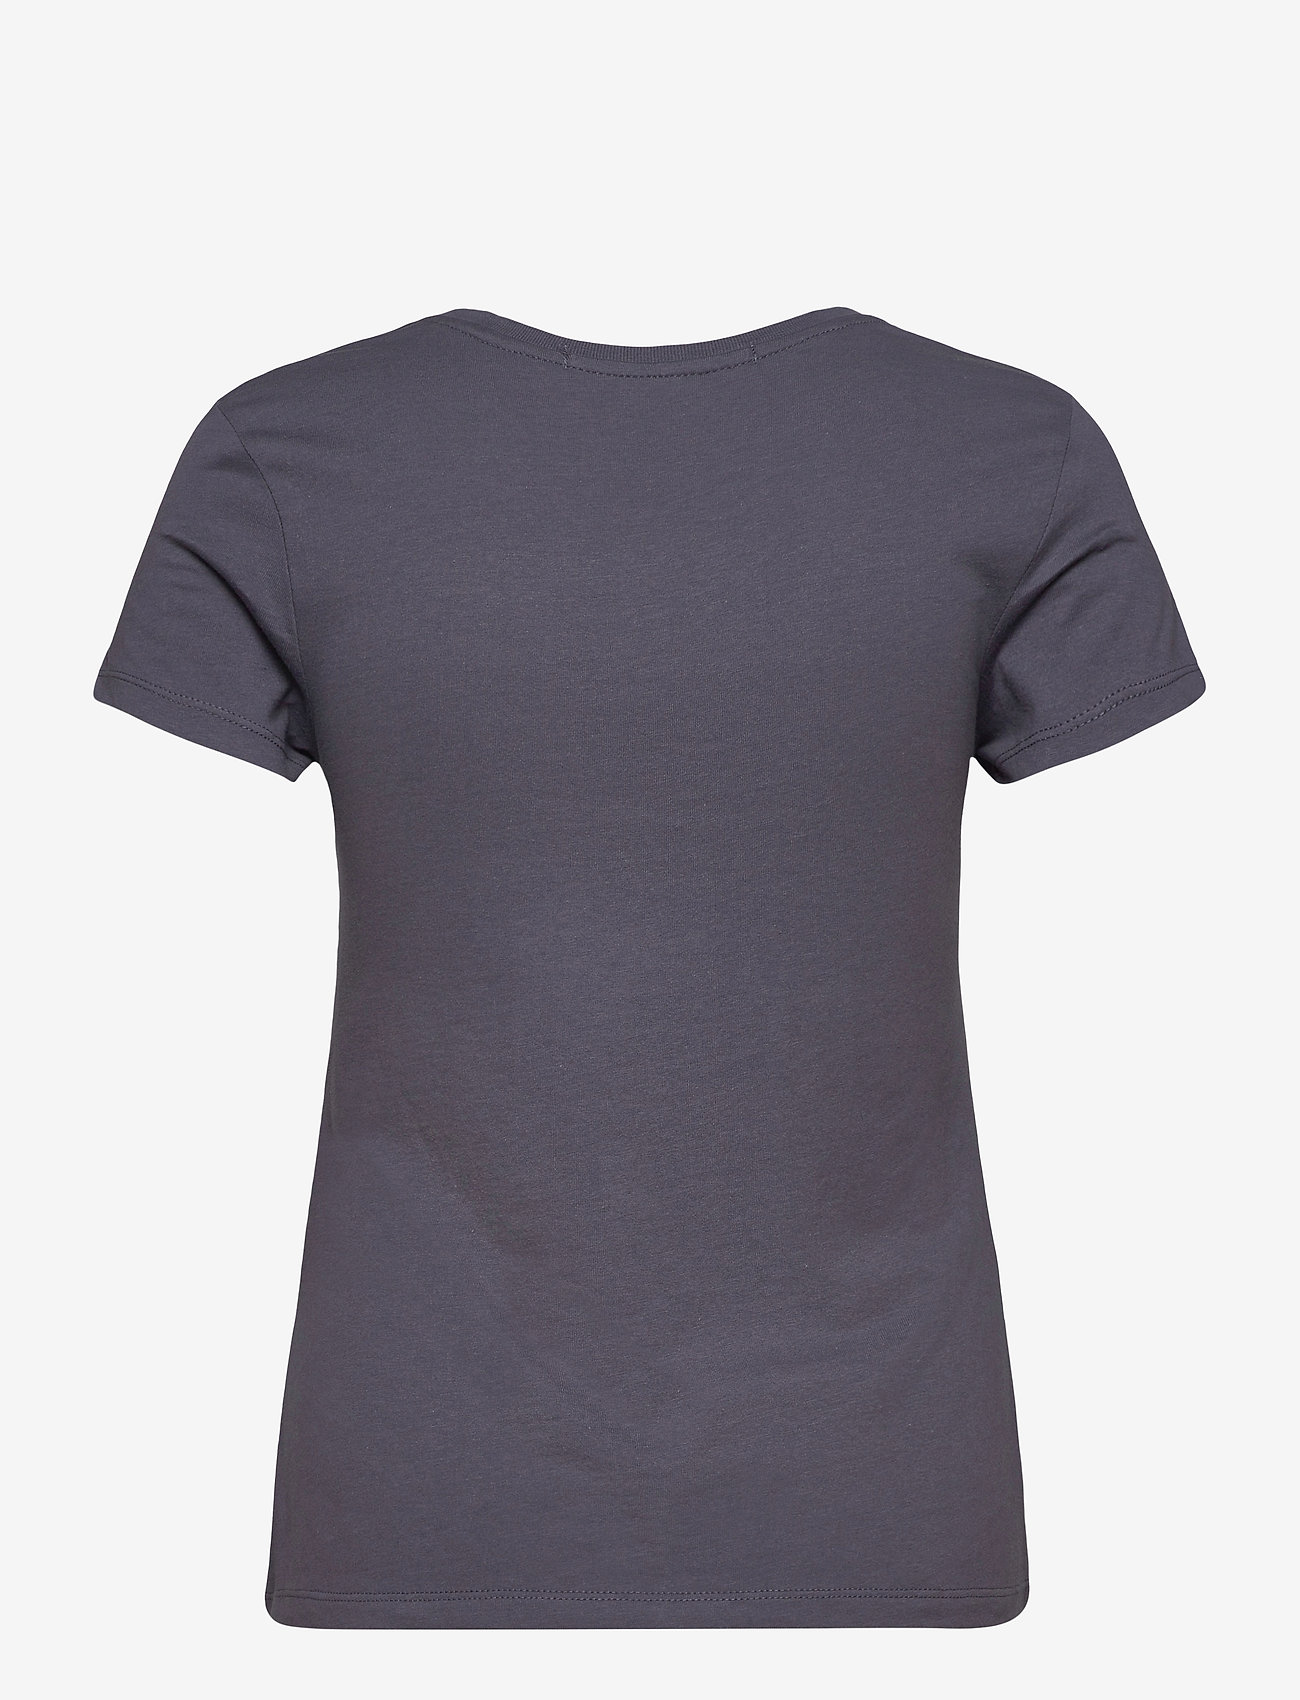 Calvin Klein Jeans - INSTITUTIONAL LOGO SLIM FIT TEE - t-shirts - abstract grey - 1